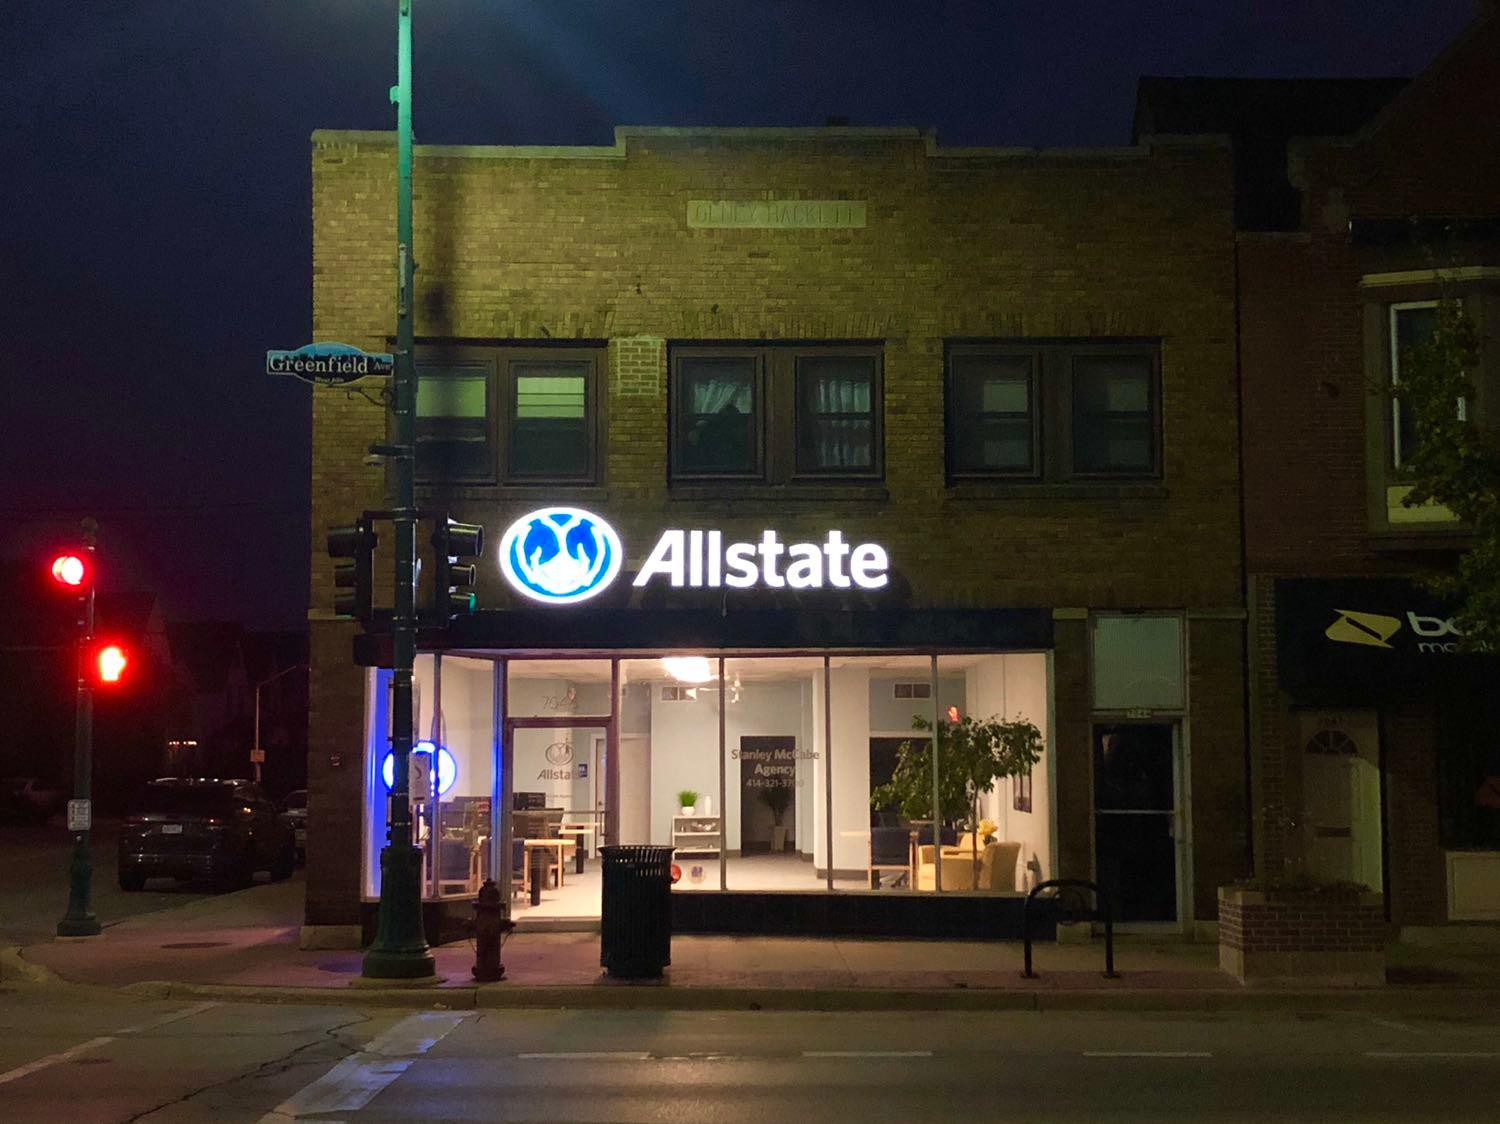 Andrew McCabe: Allstate Insurance West Allis (414)321-3700